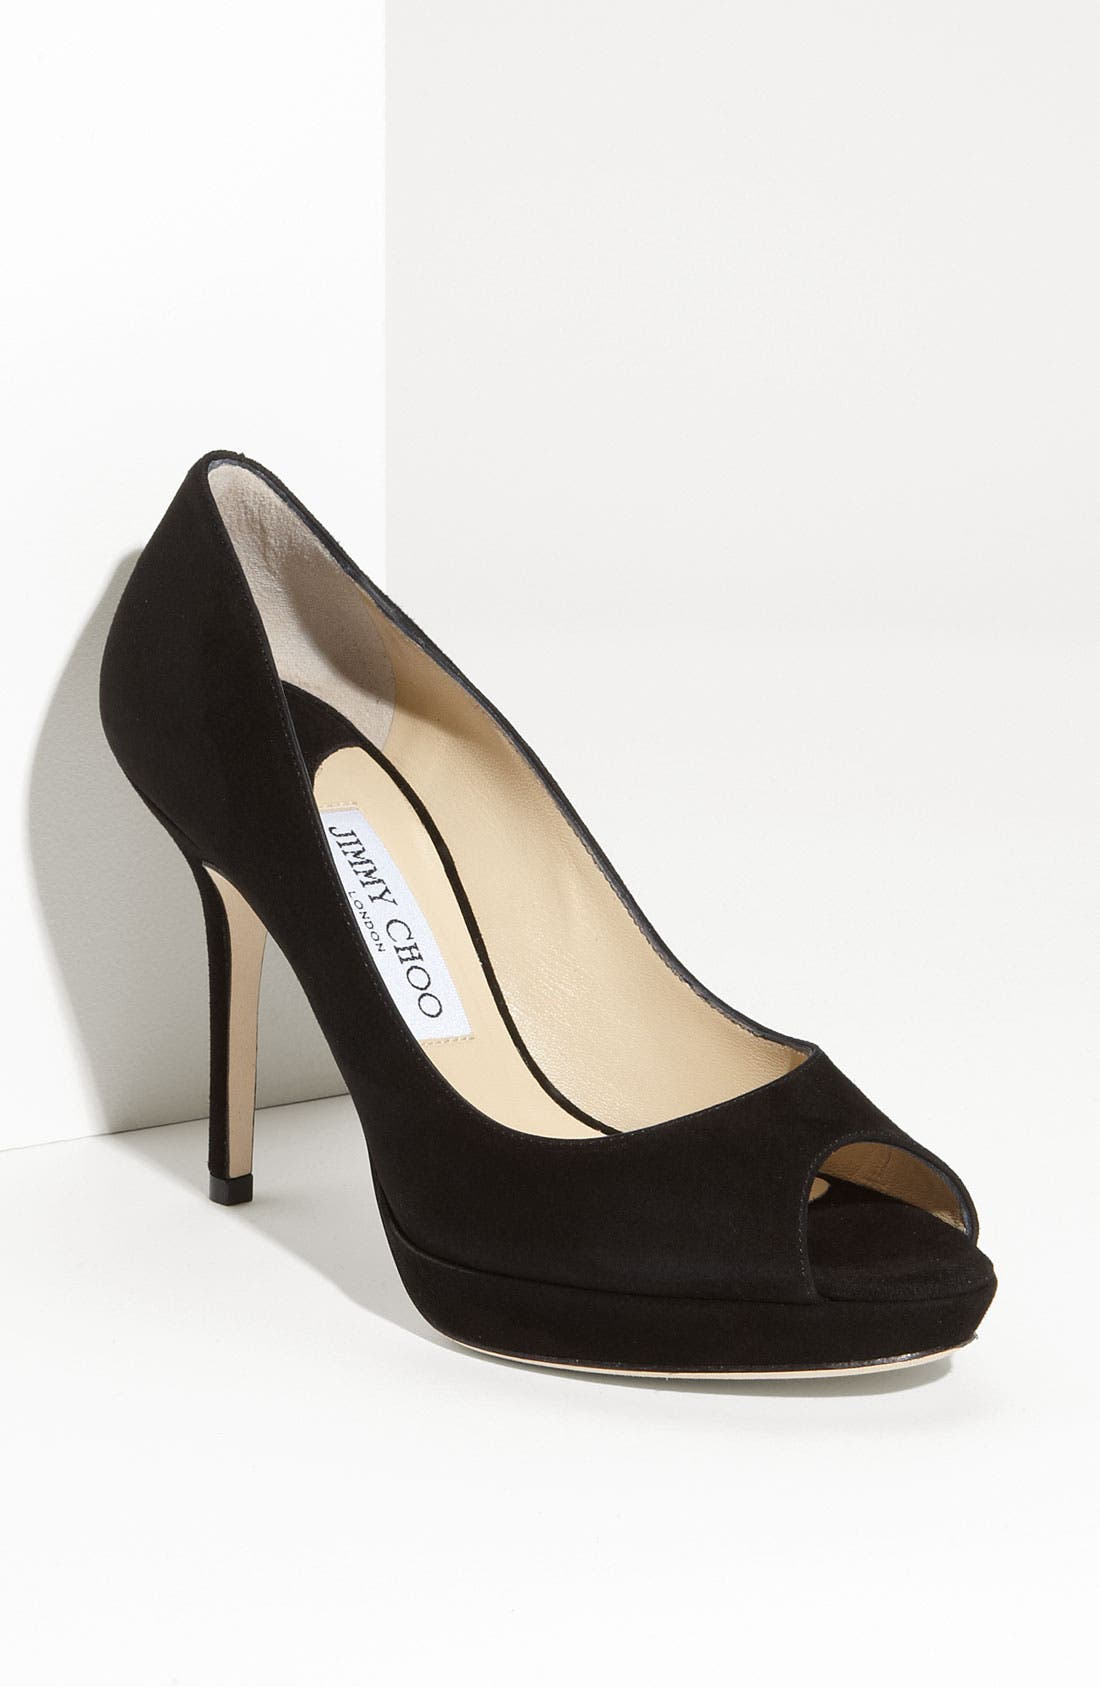 Main Image - Jimmy Choo 'Luna' Peep Toe Pump